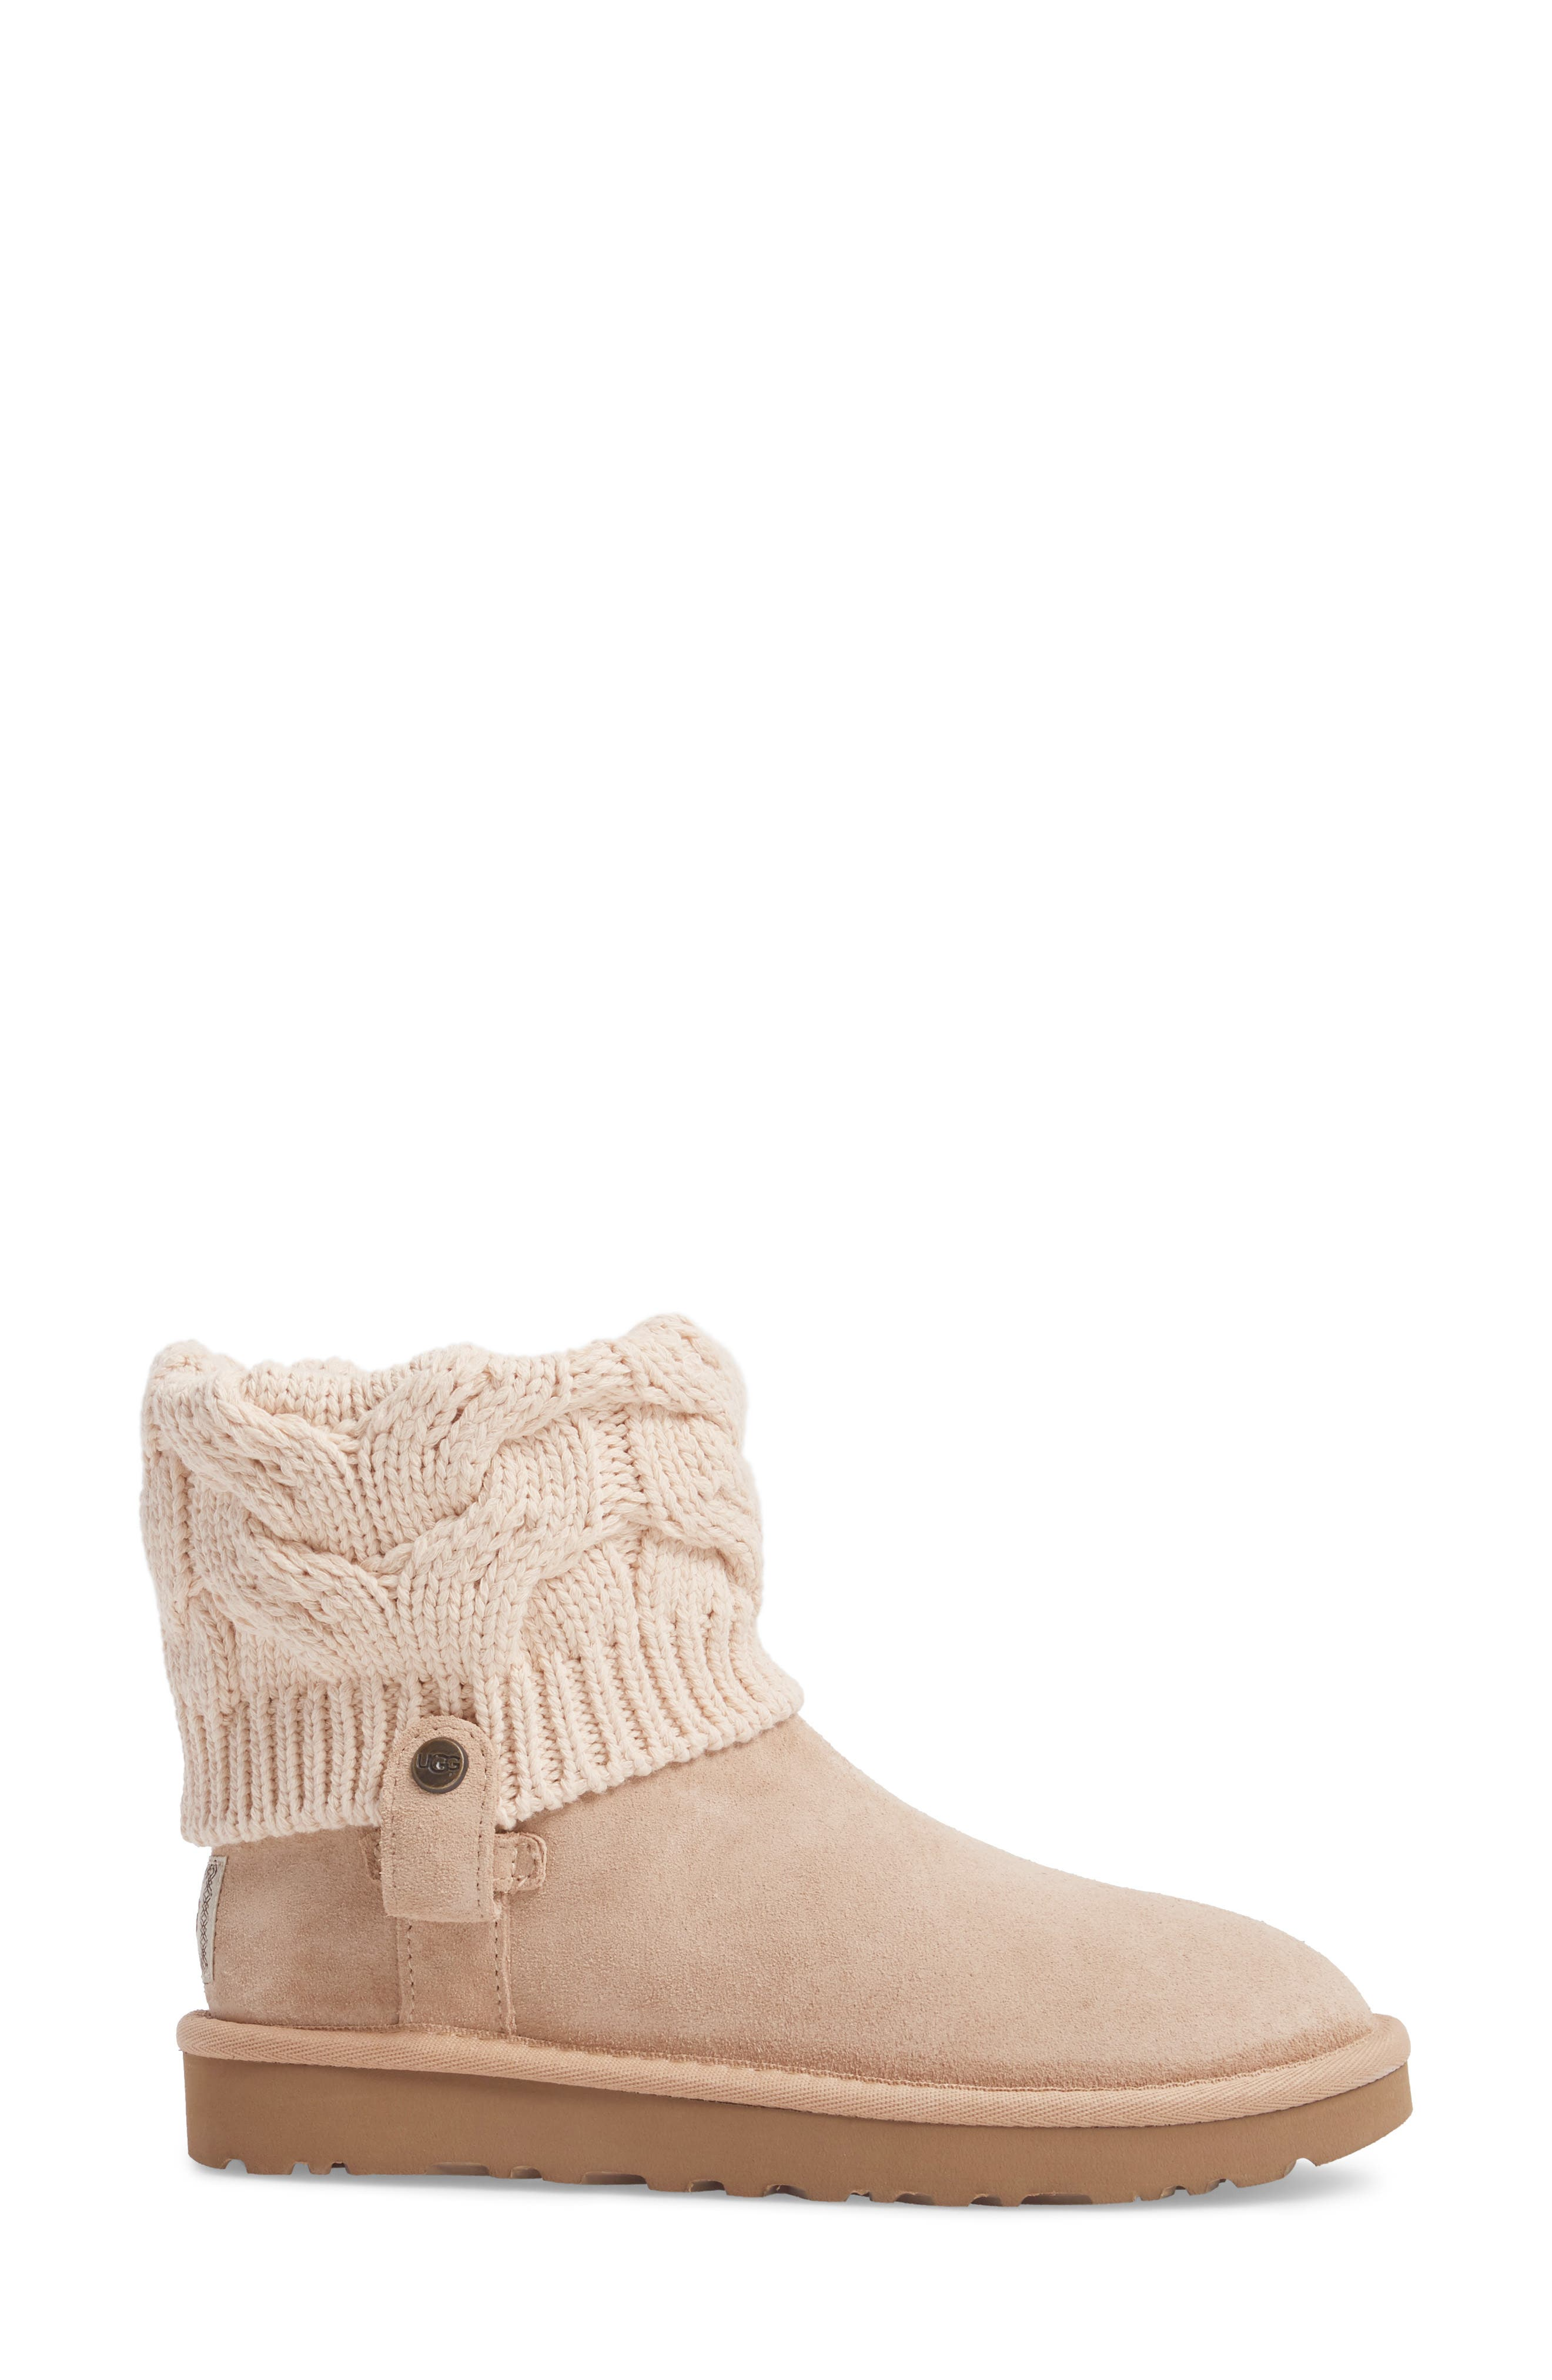 Alternate Image 3  - UGG® Saela Knit Cuff Boot (Women)